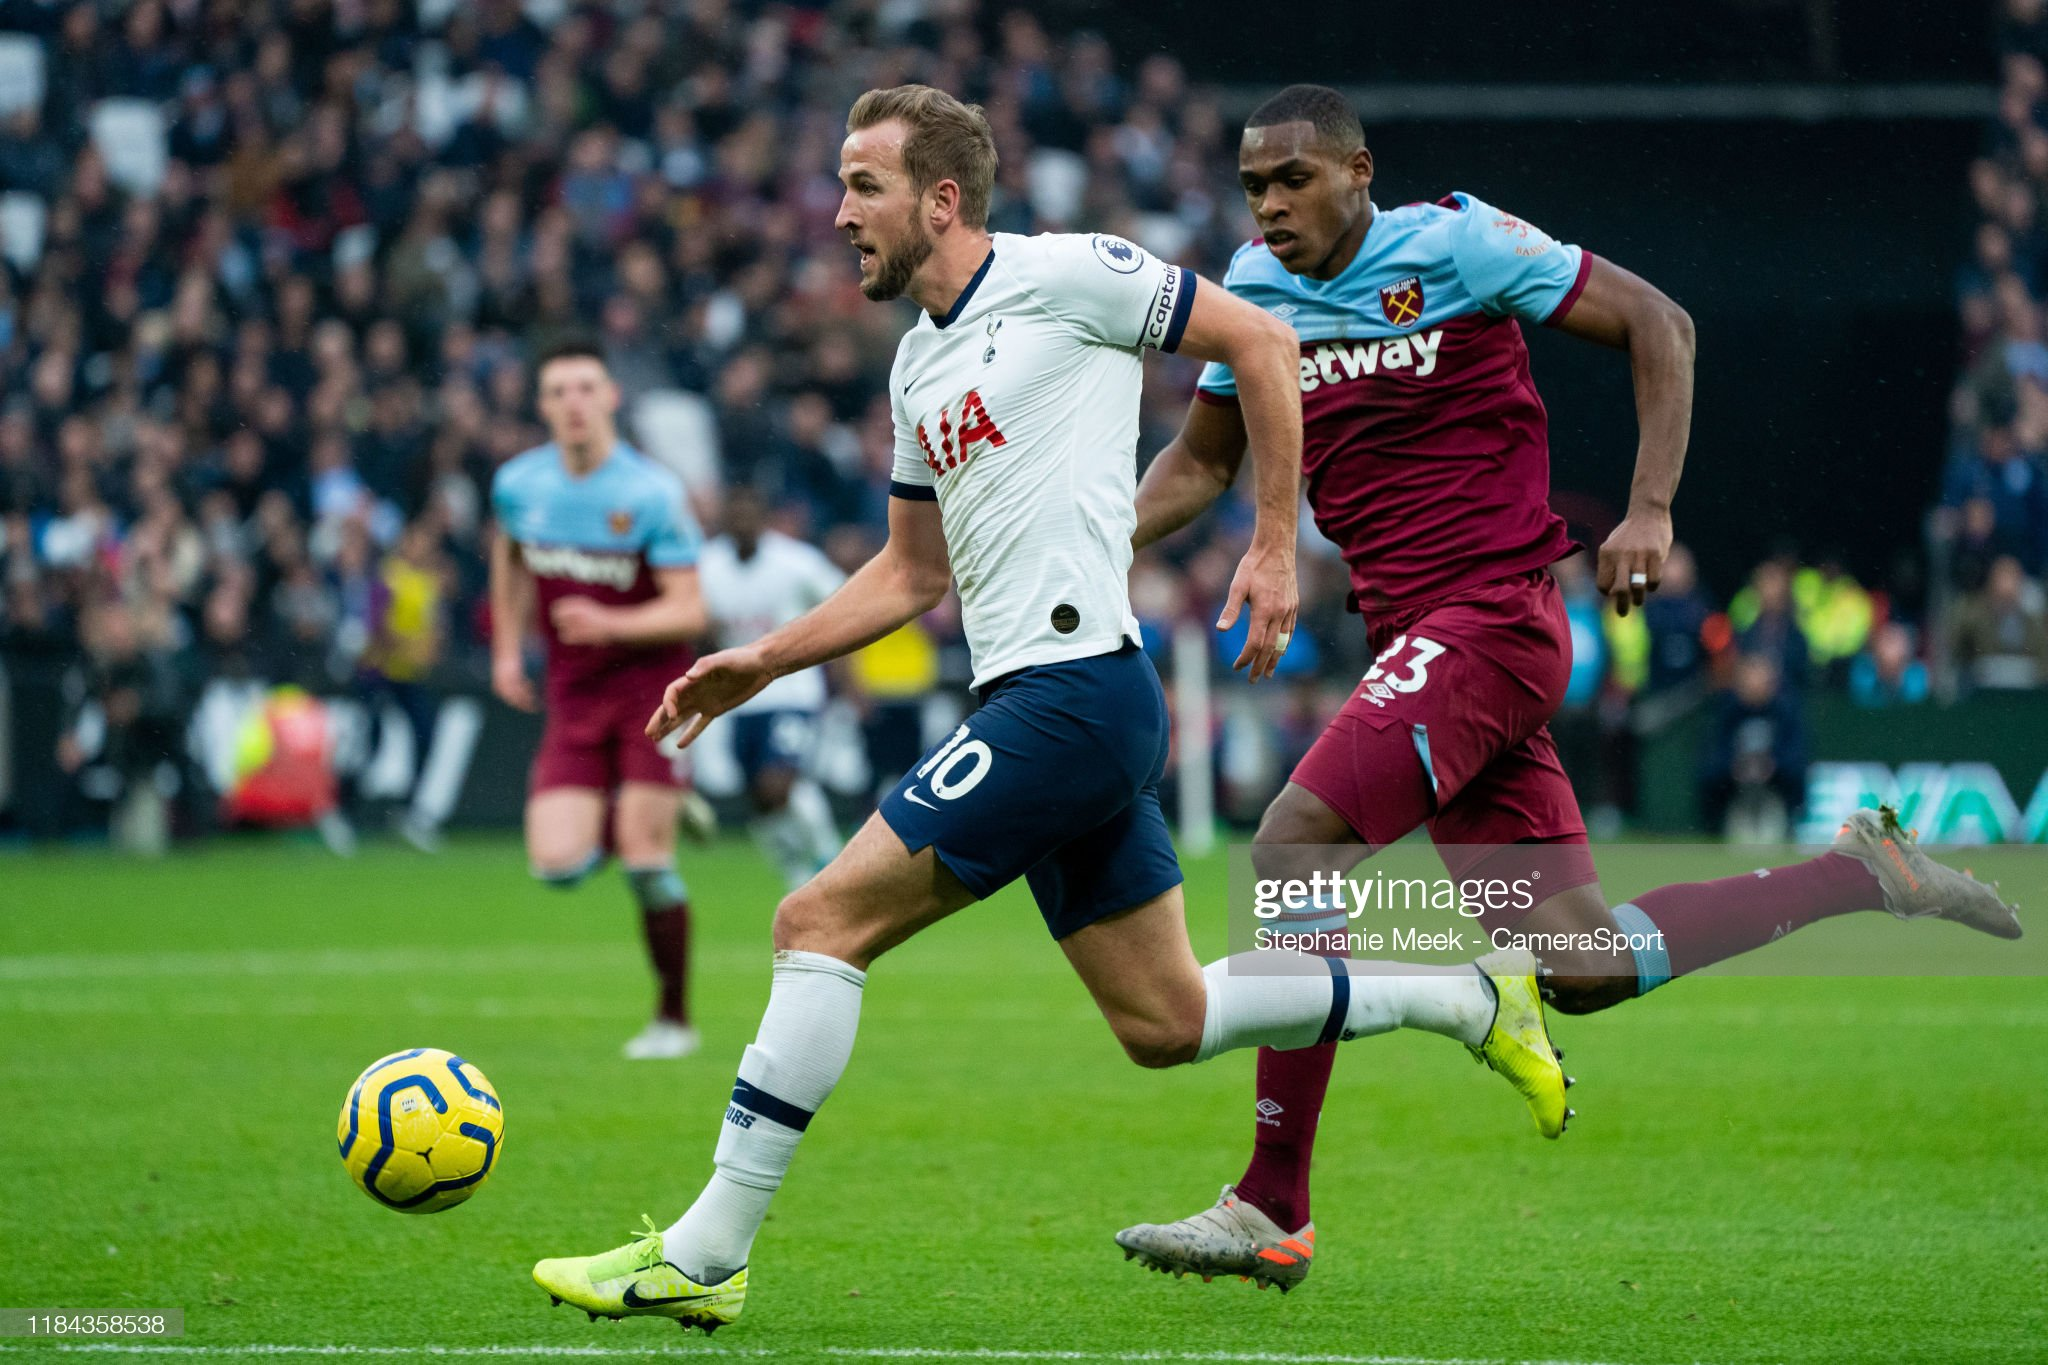 Tottenham vs West Ham Preview, prediction and odds